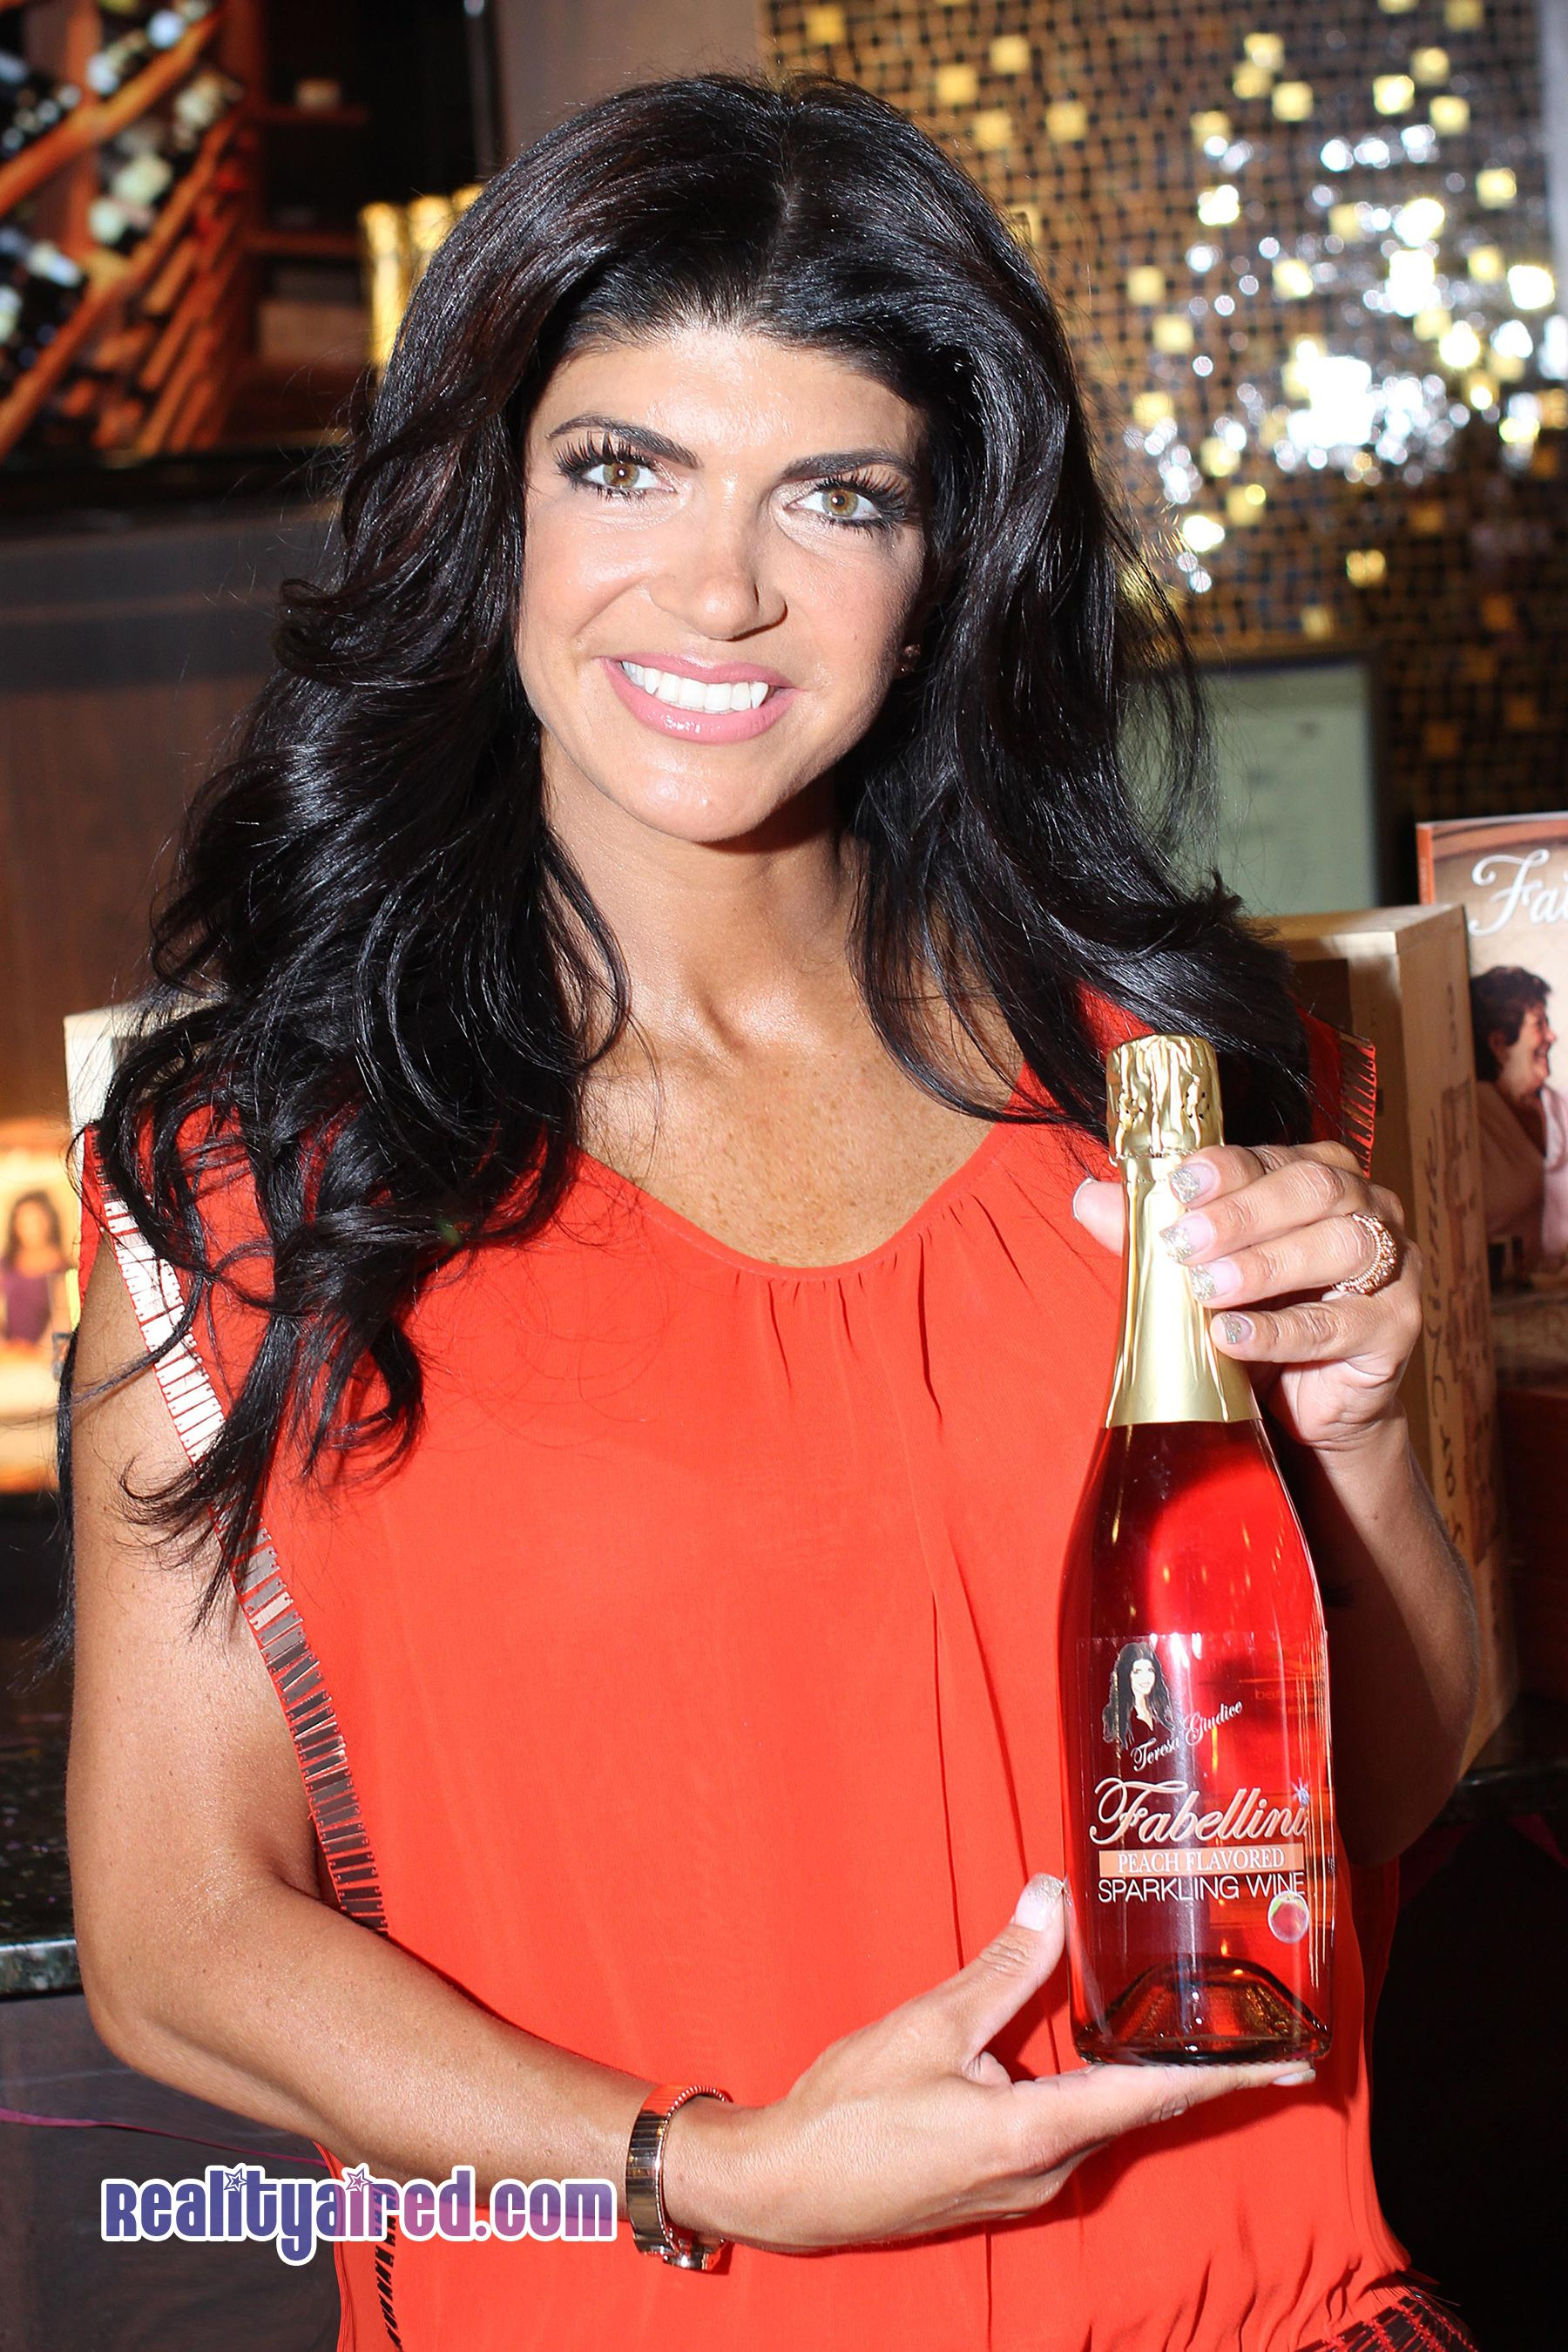 Real Housewives Star Teresa Giudice Signs Bottles Of Fabellini In New Jersey Real Housewives Teresa Guidice Teresa Giudice